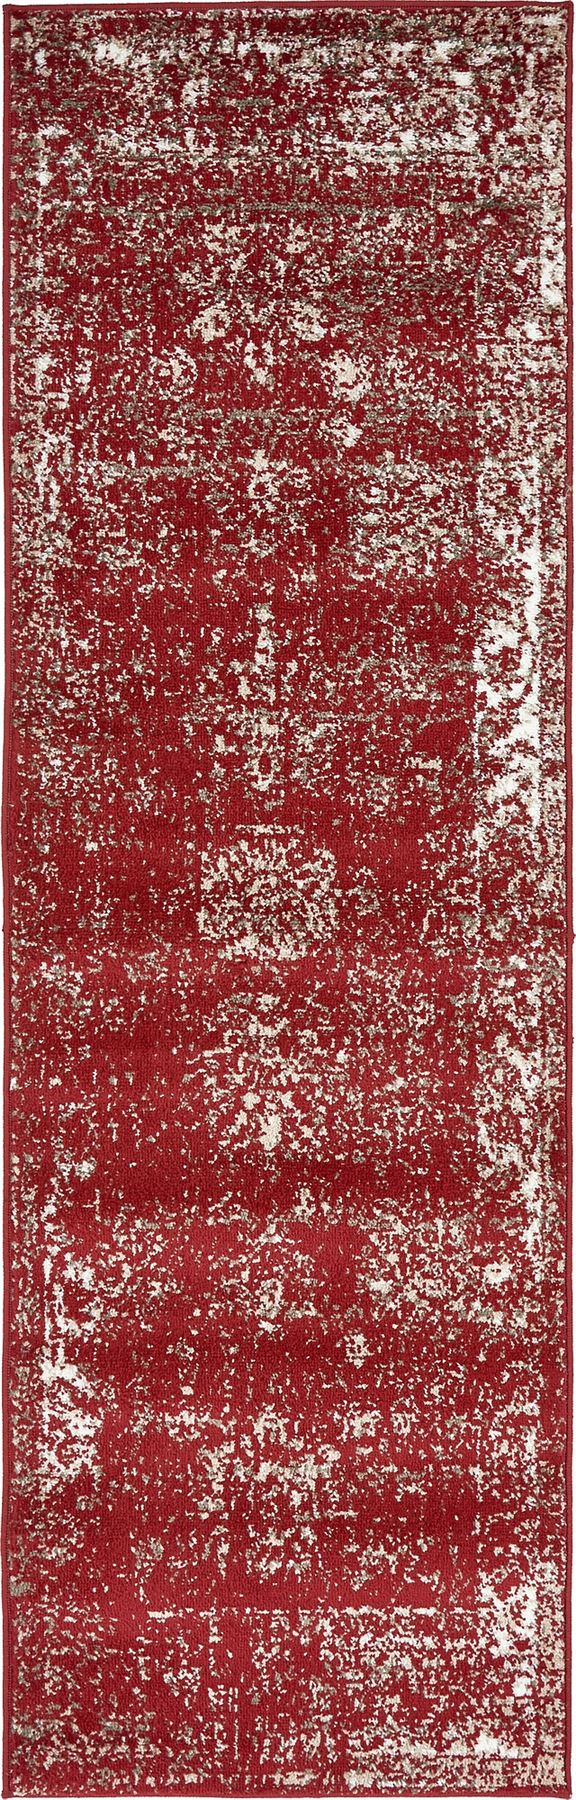 Designs Of Carpets new persian style rugs floor carpets modern designs carpet area